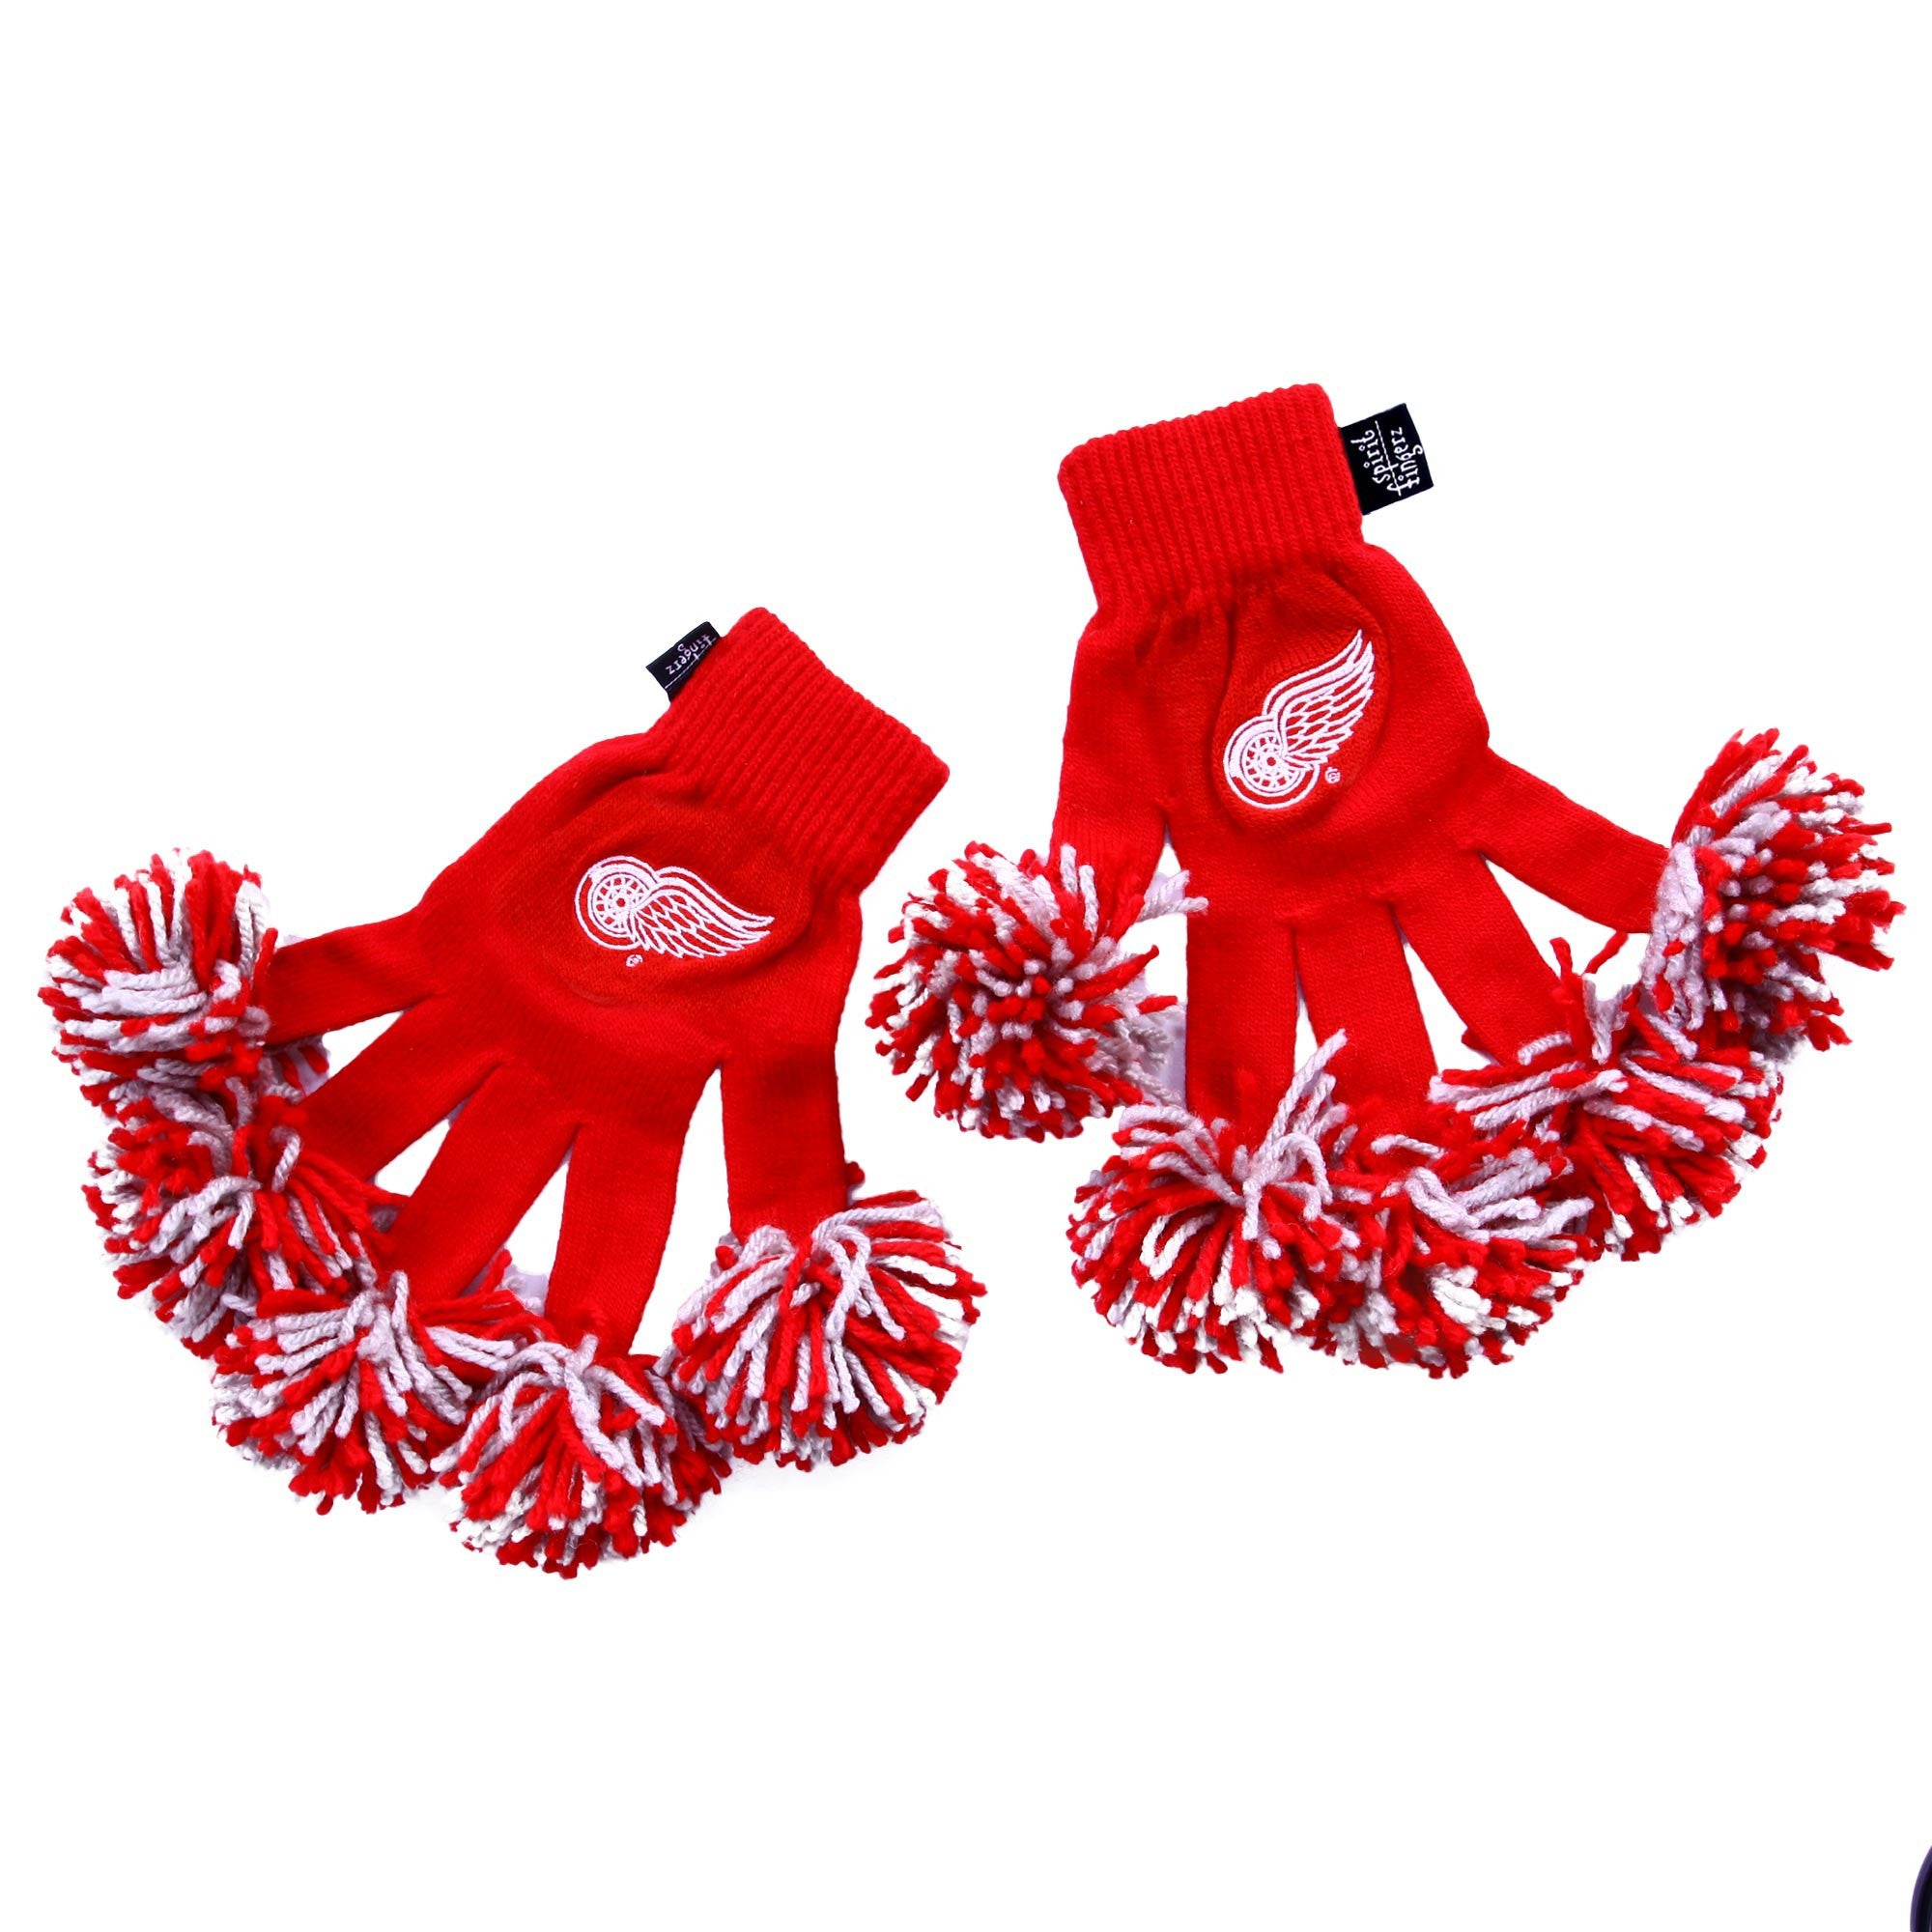 Detroit Red Wings NHL Spirit Fingerz Cheerleading Pom-Pom Gloves